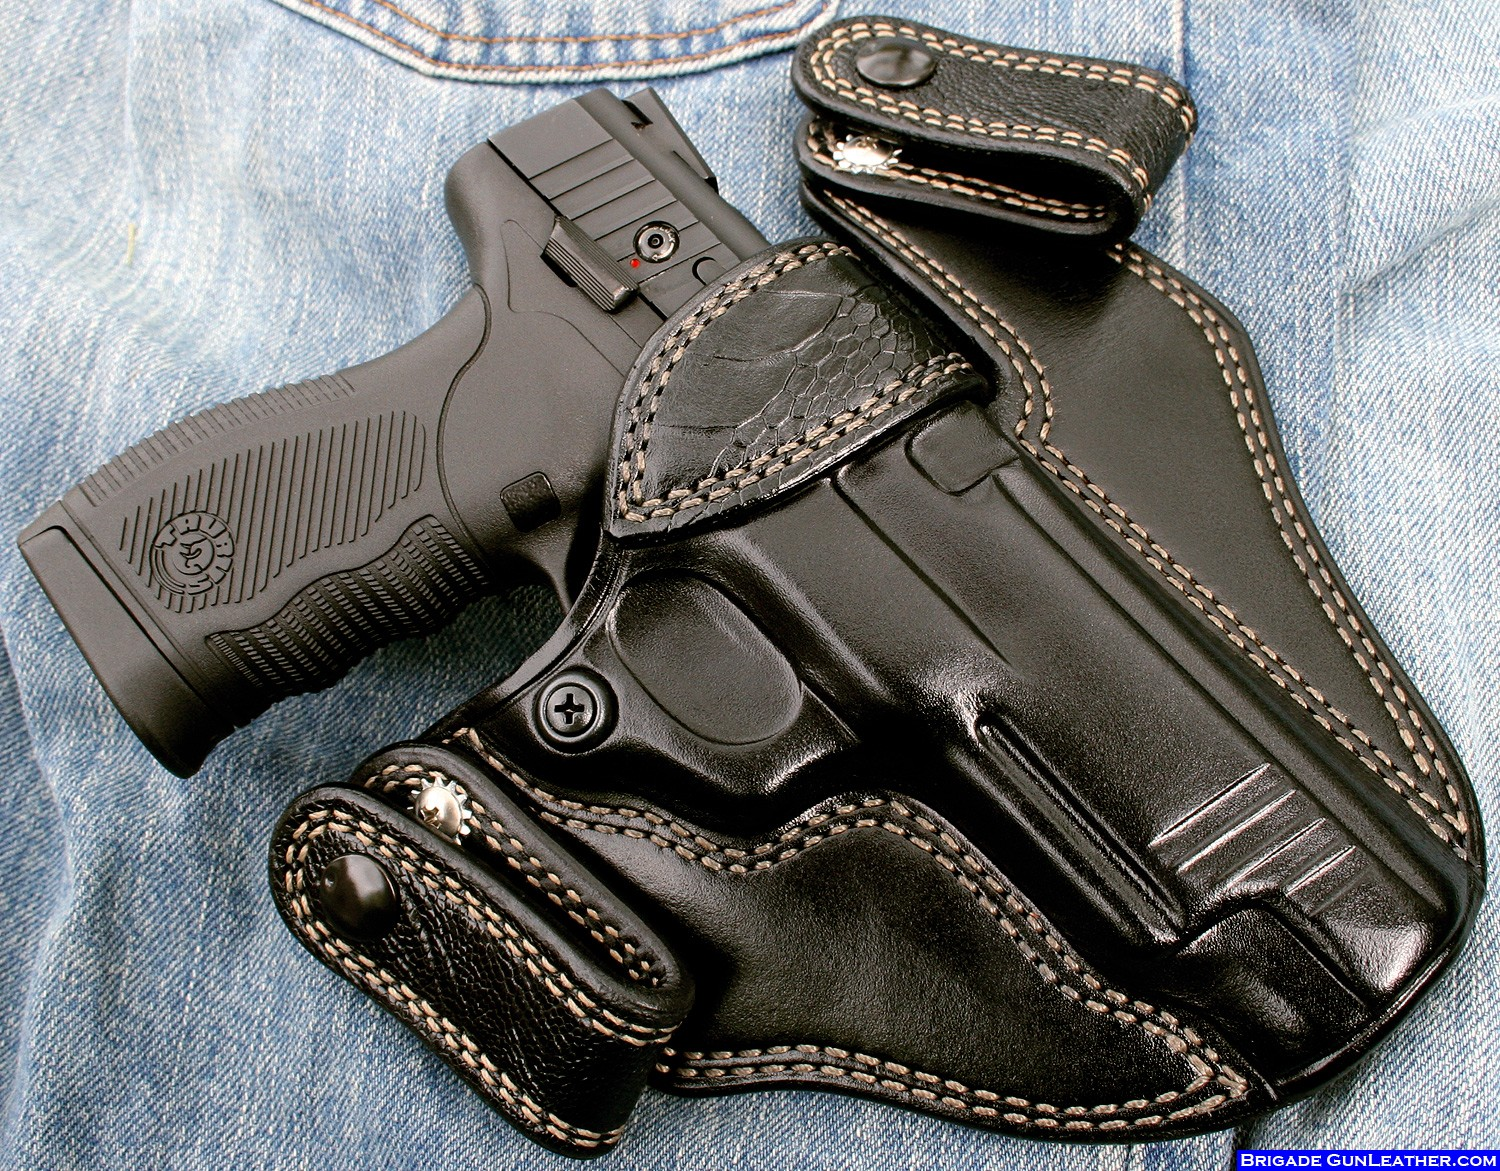 1911 Holsters Concealed Carry